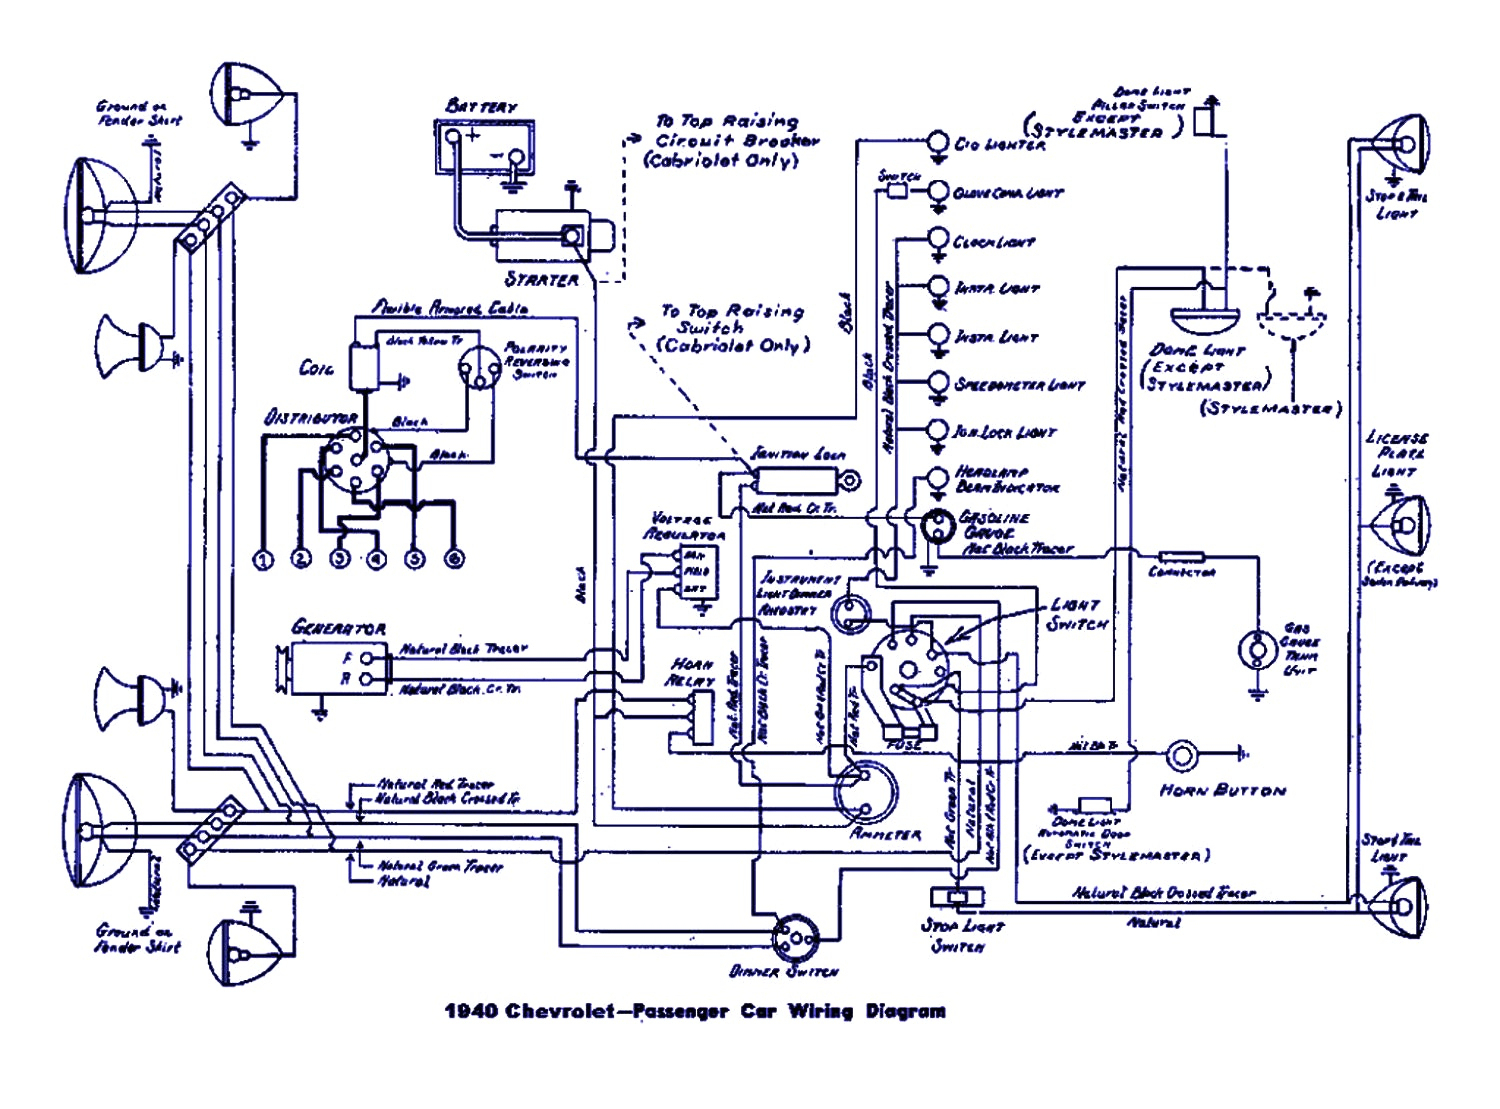 1998 36 Volt Ezgo Golf Cart Wiring Diagram - Wiring Diagram Explained - Ez Go Wiring Diagram 36 Volt